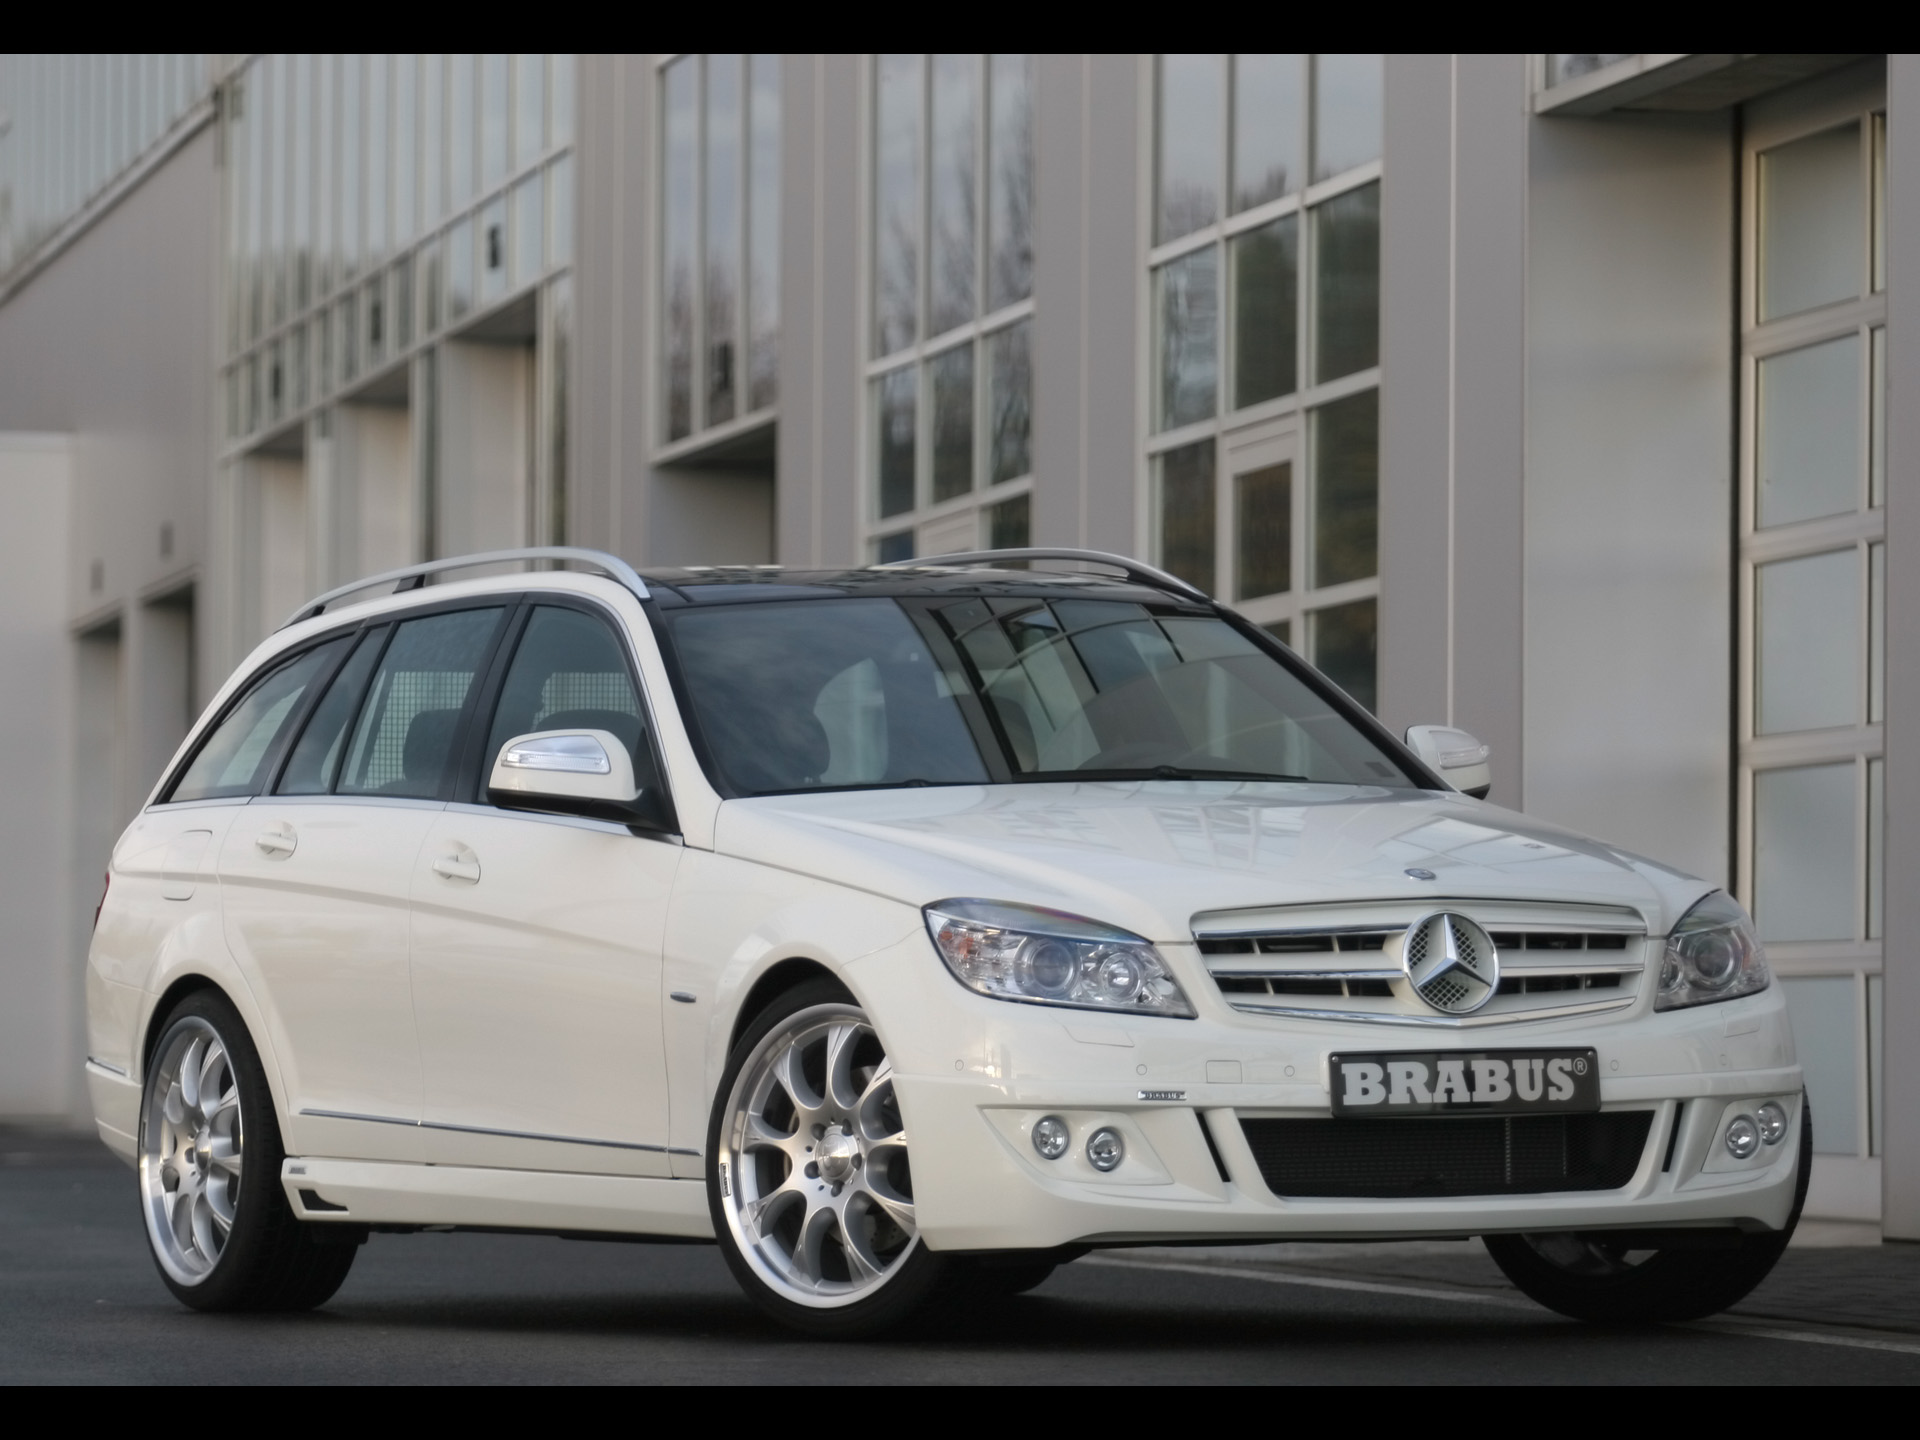 Brabus C-Class Estate (S204) photo 49803